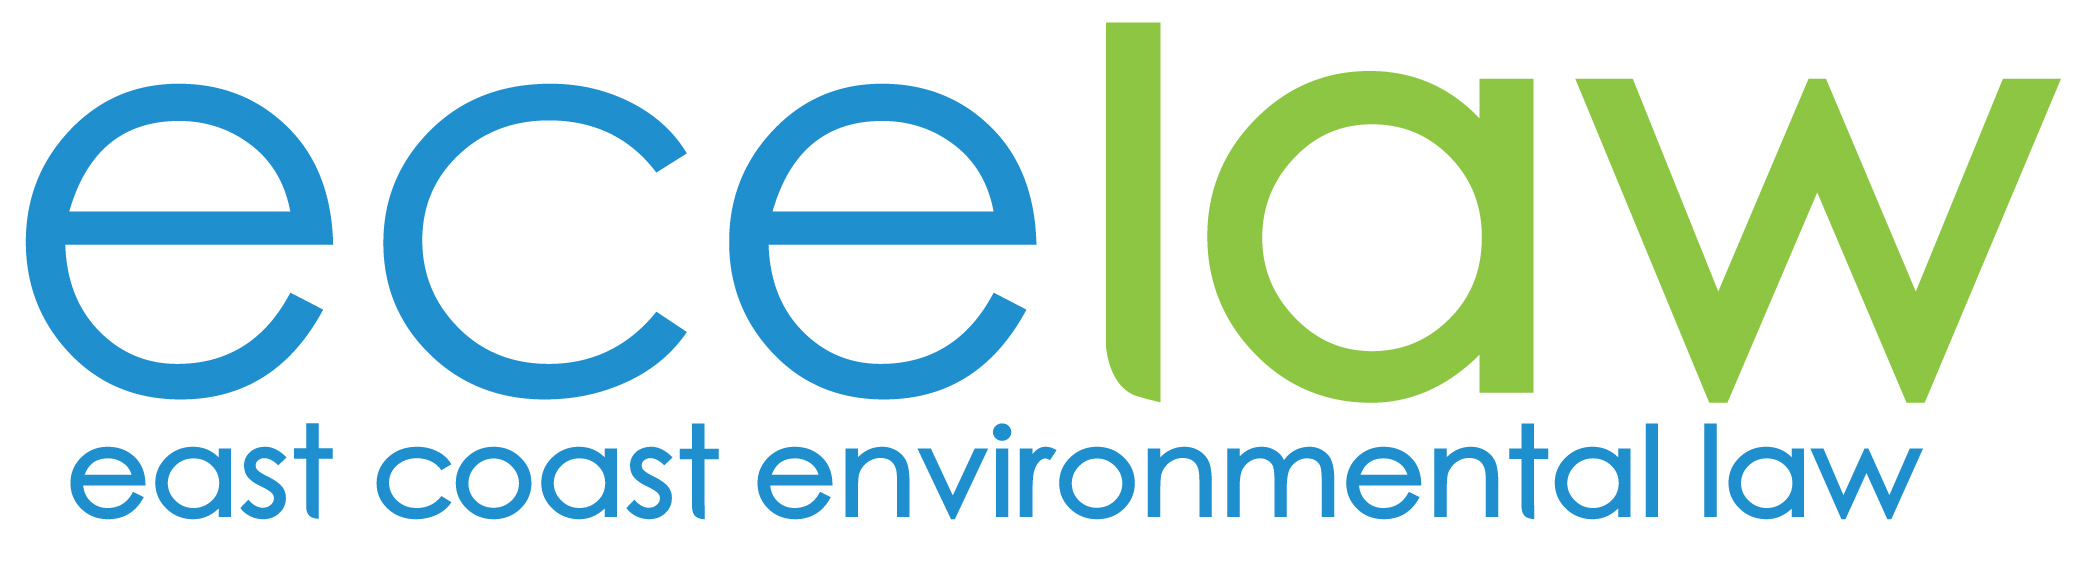 East Coast Environmental Law Logo